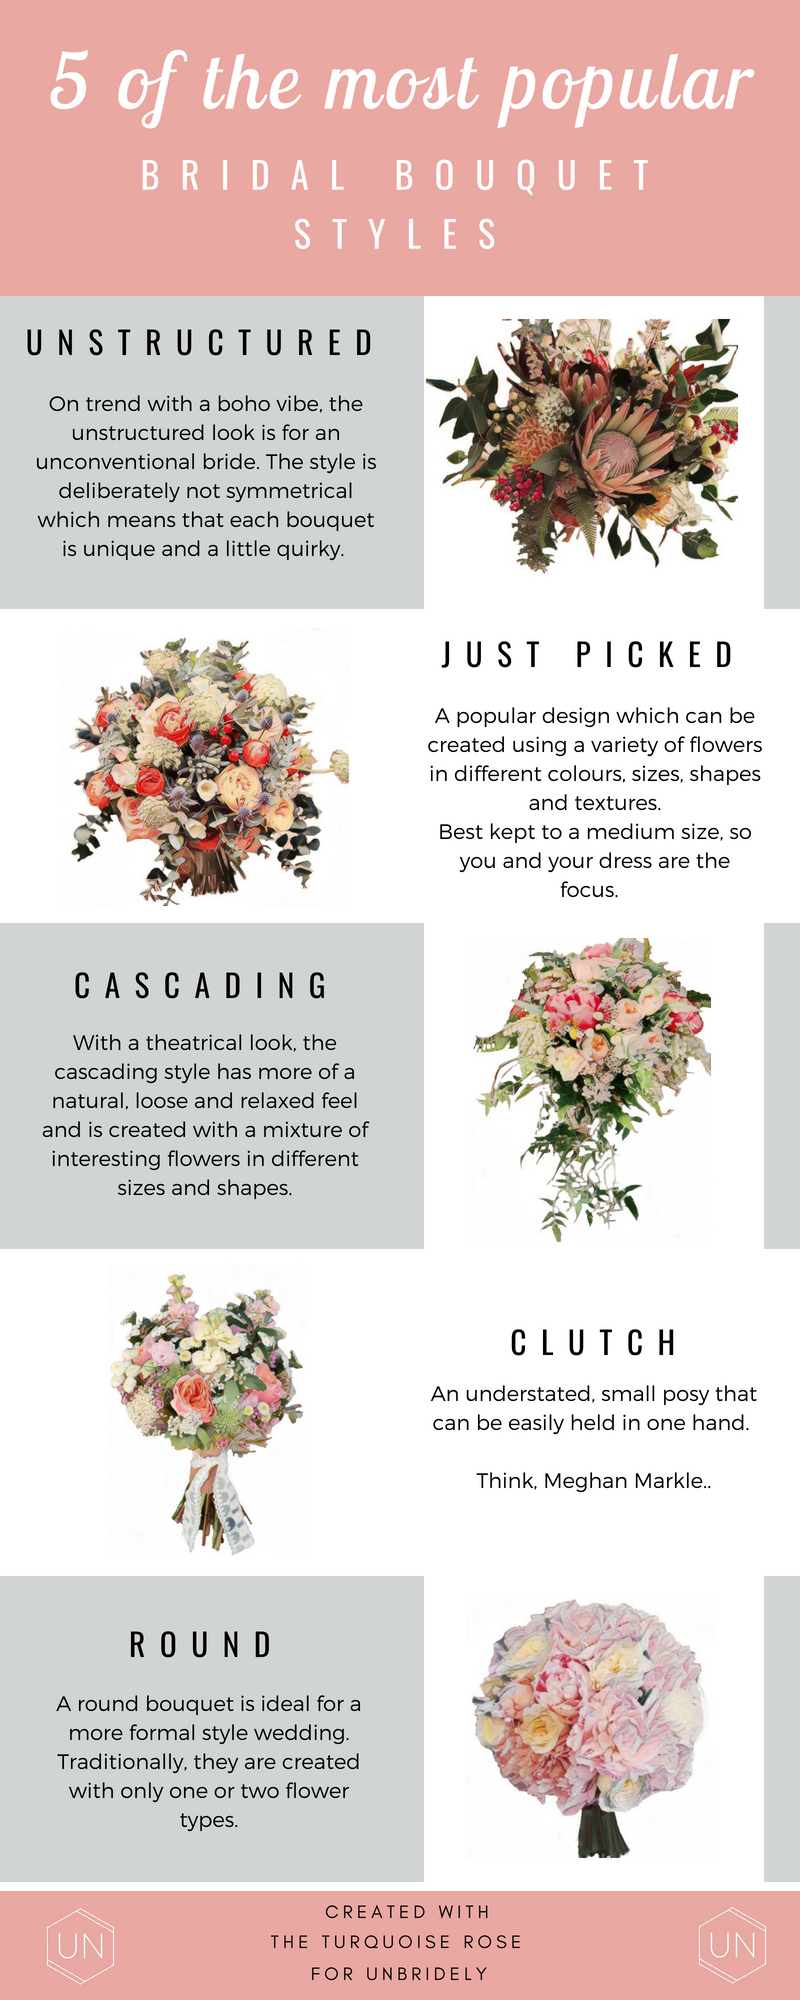 5 popular wedding bouquet styles.jpg